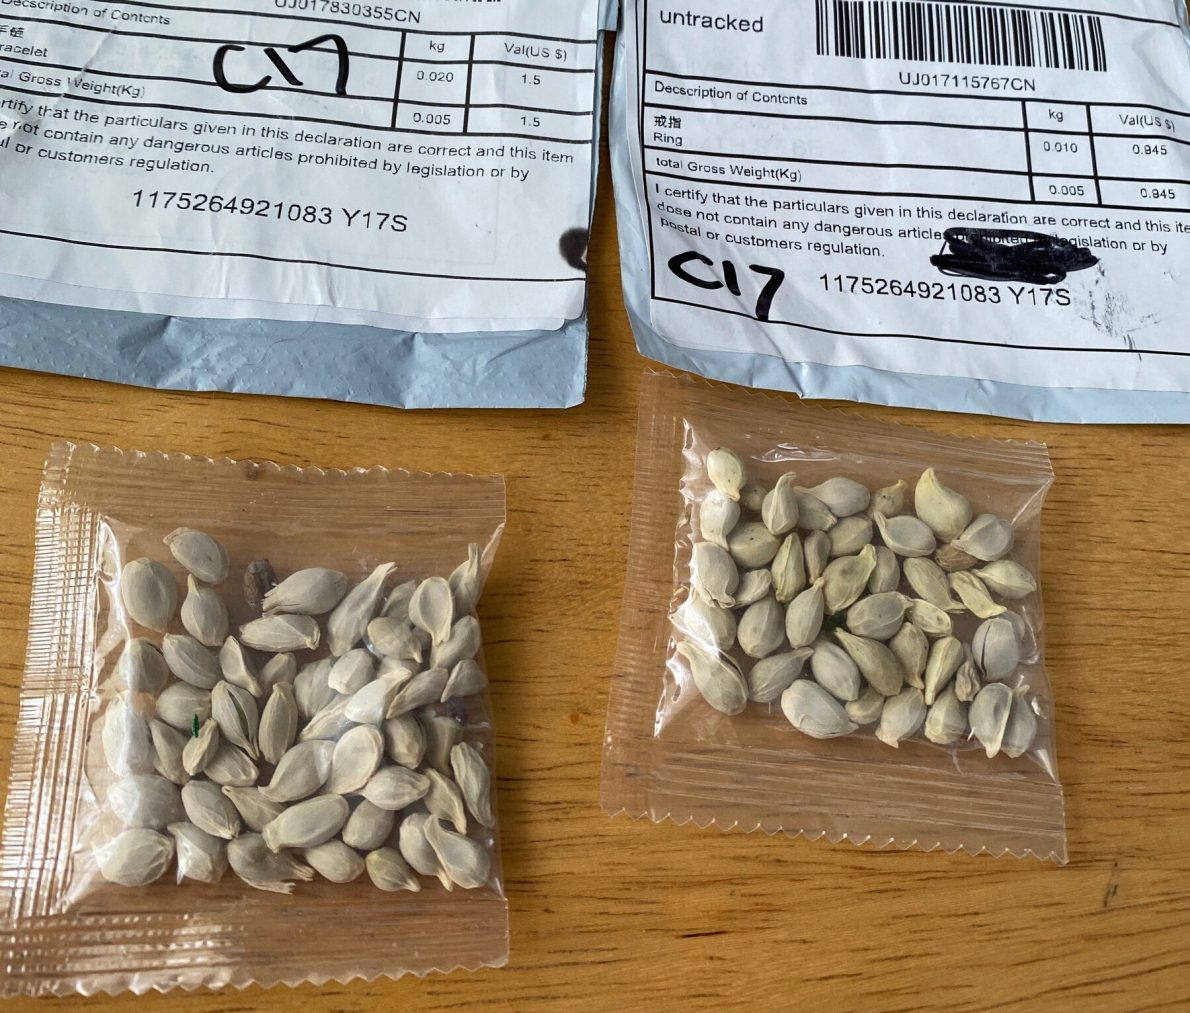 Warning: Unsolicited Seeds from China